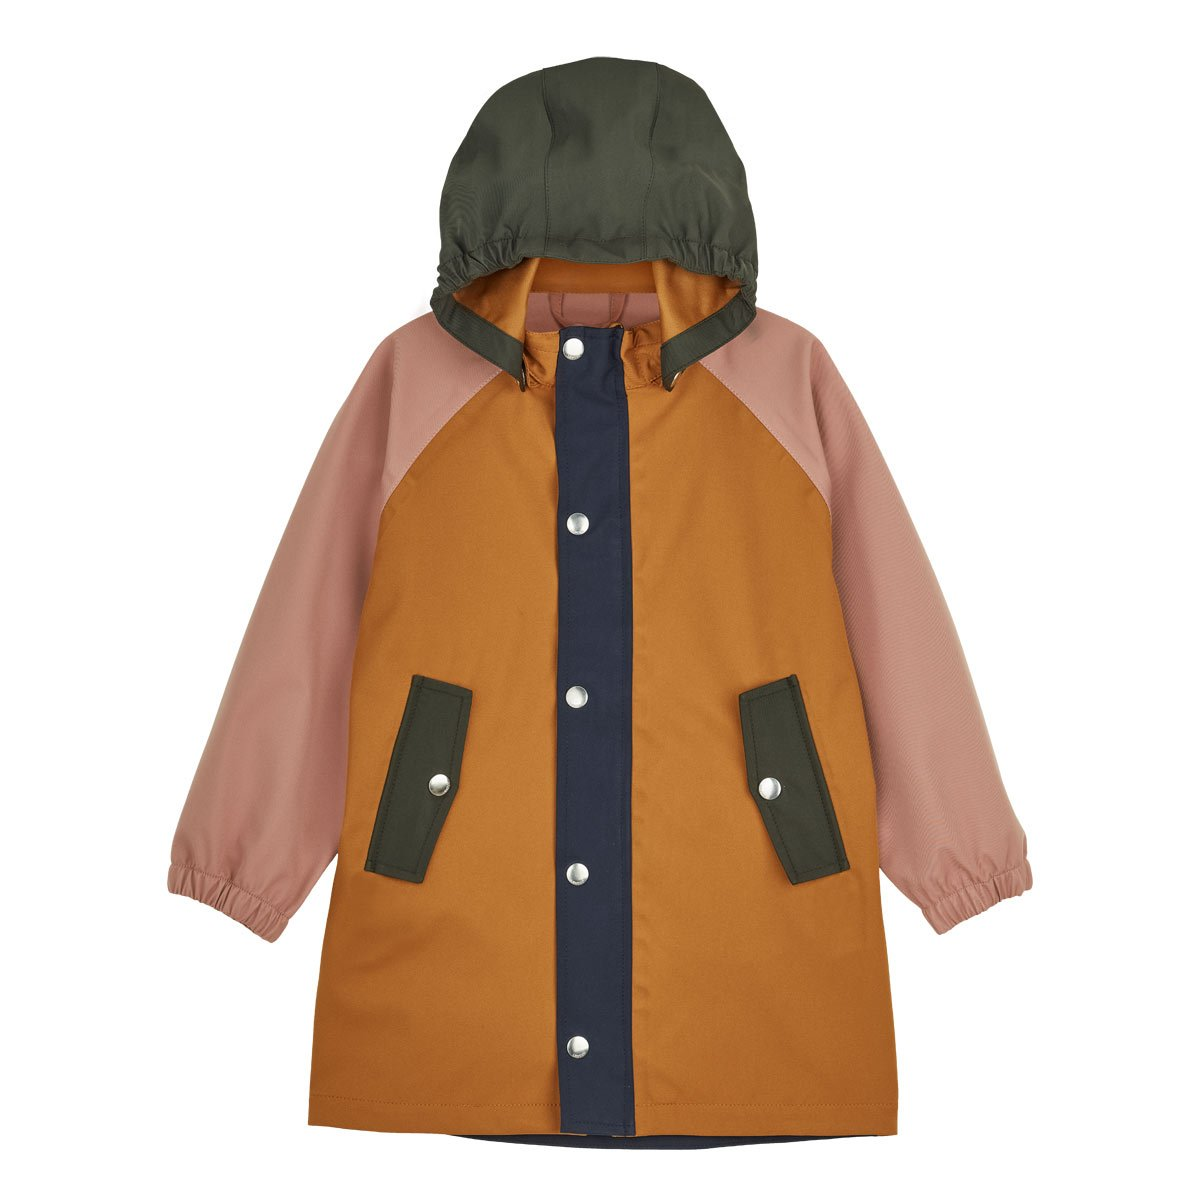 Spencer Long Raincoat - Junior - Dark rose multi mix